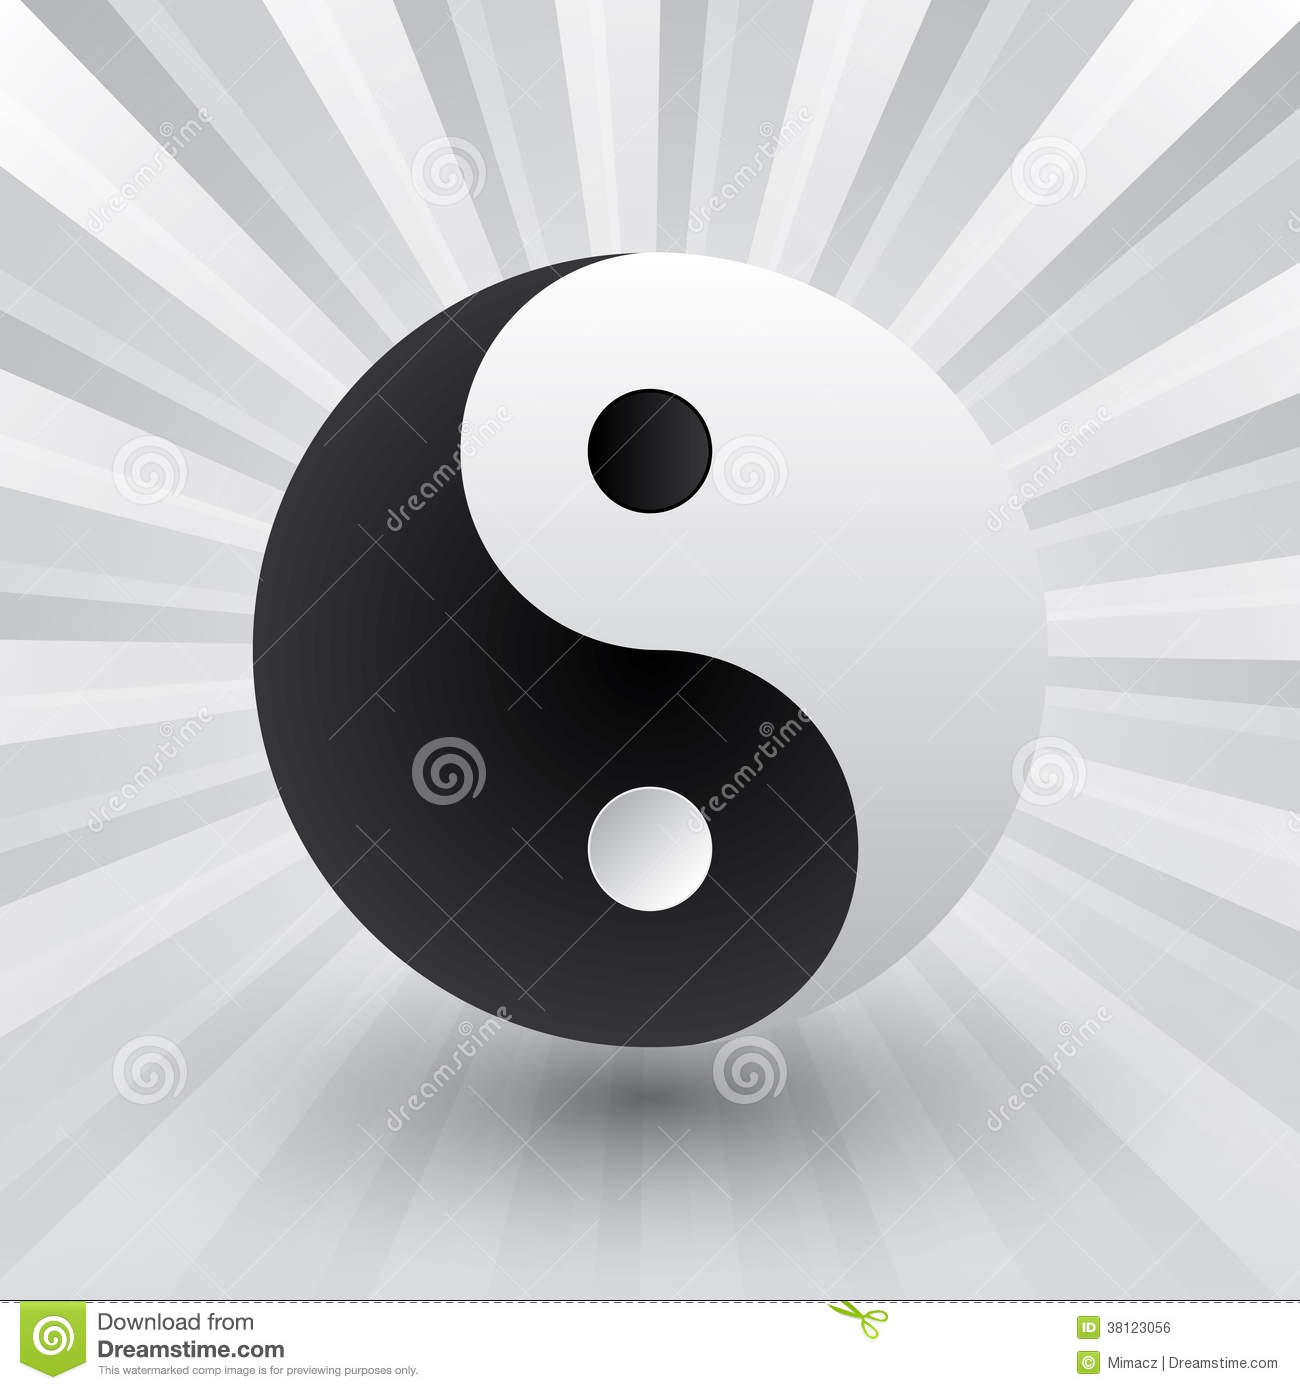 Yin yang royalty free stock image image 38123056 for Architecture yin yang